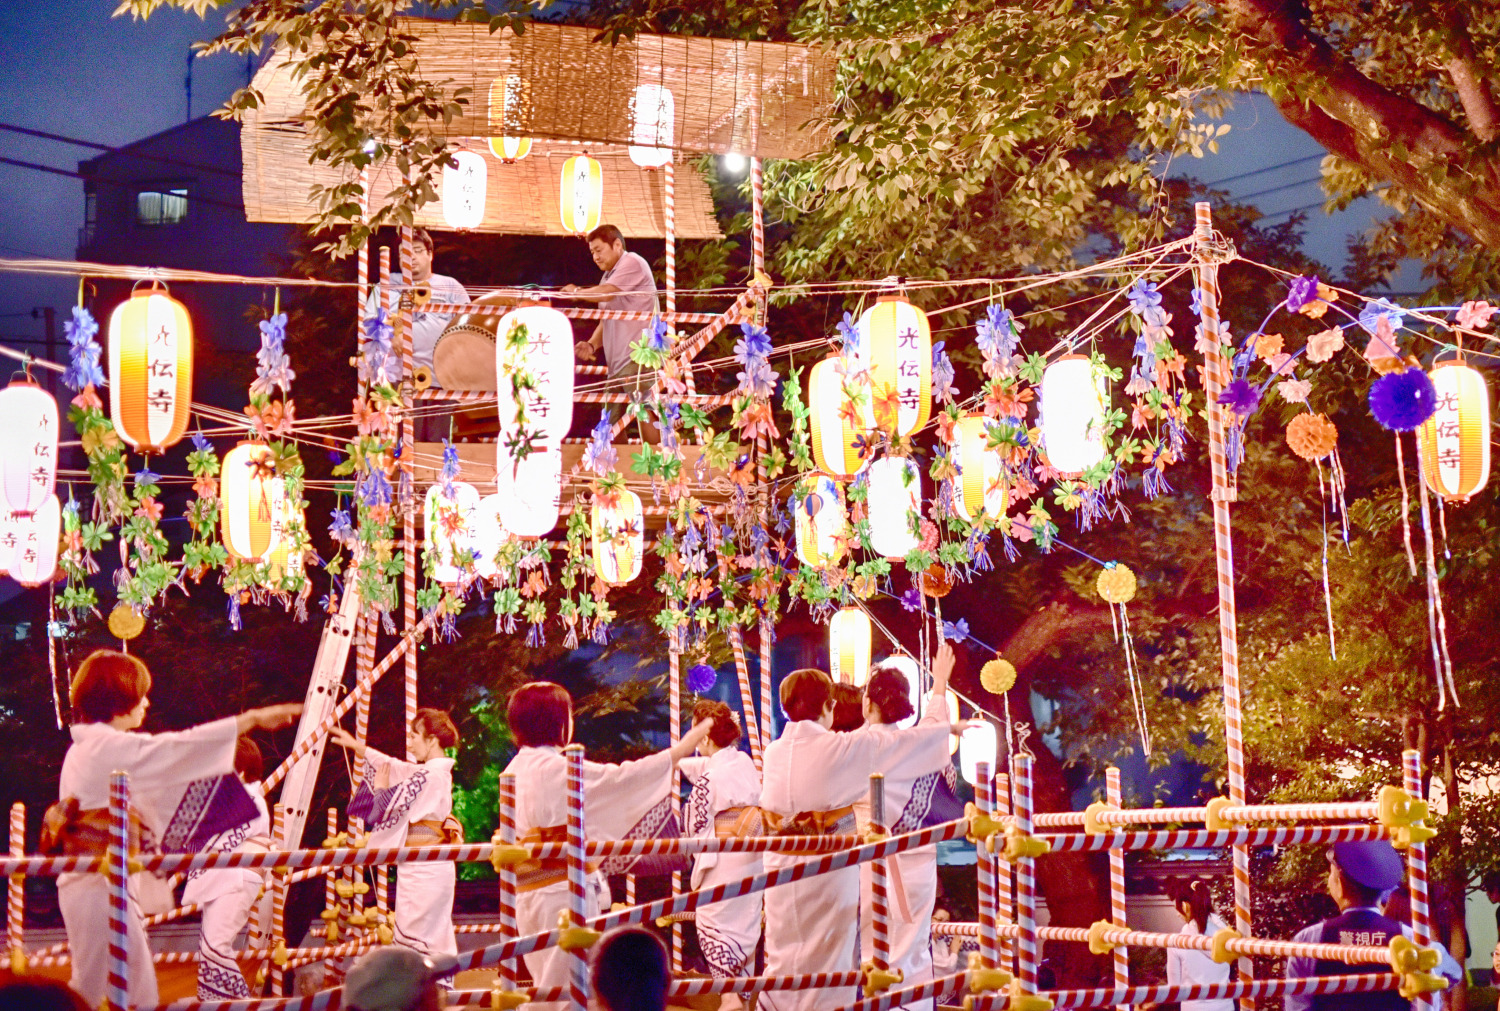 Summer festival image of early summer